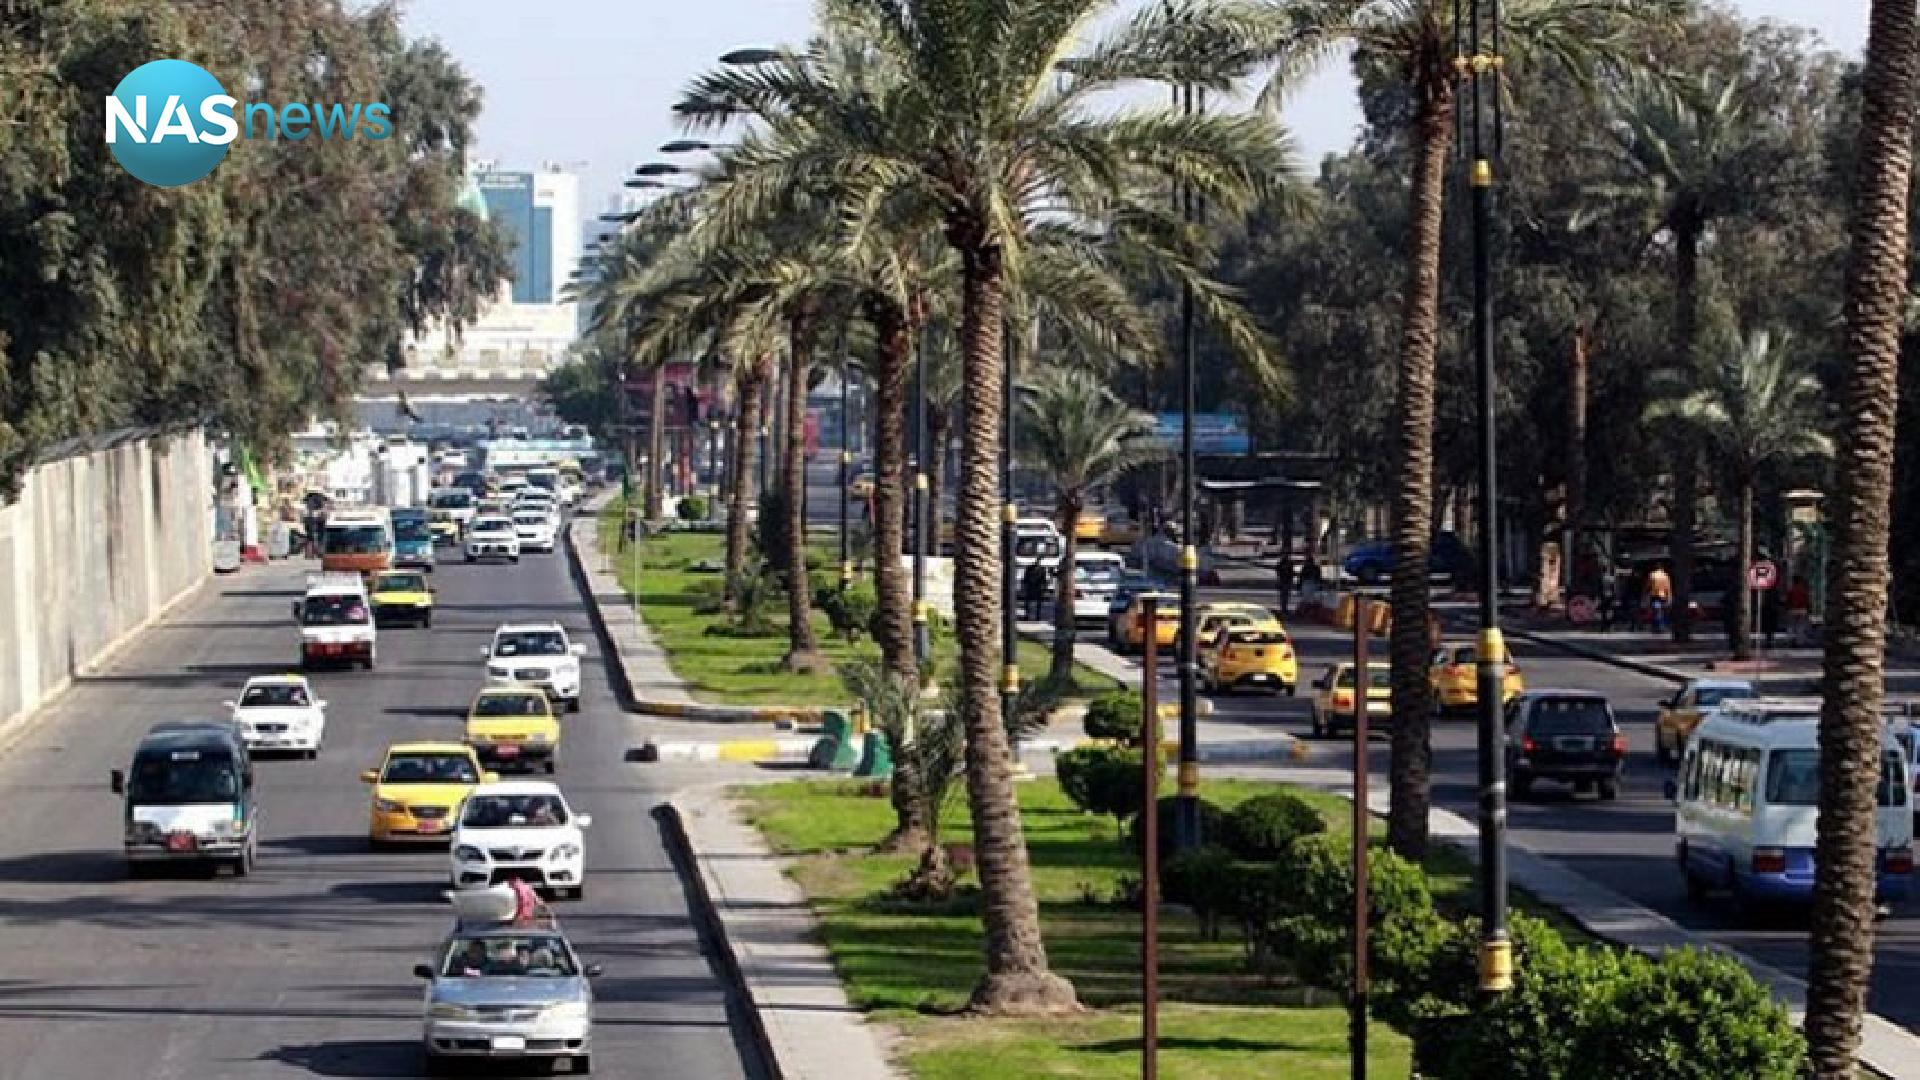 An Iraqi observer provides an interesting explanation about the reality of the upcoming climate devastation